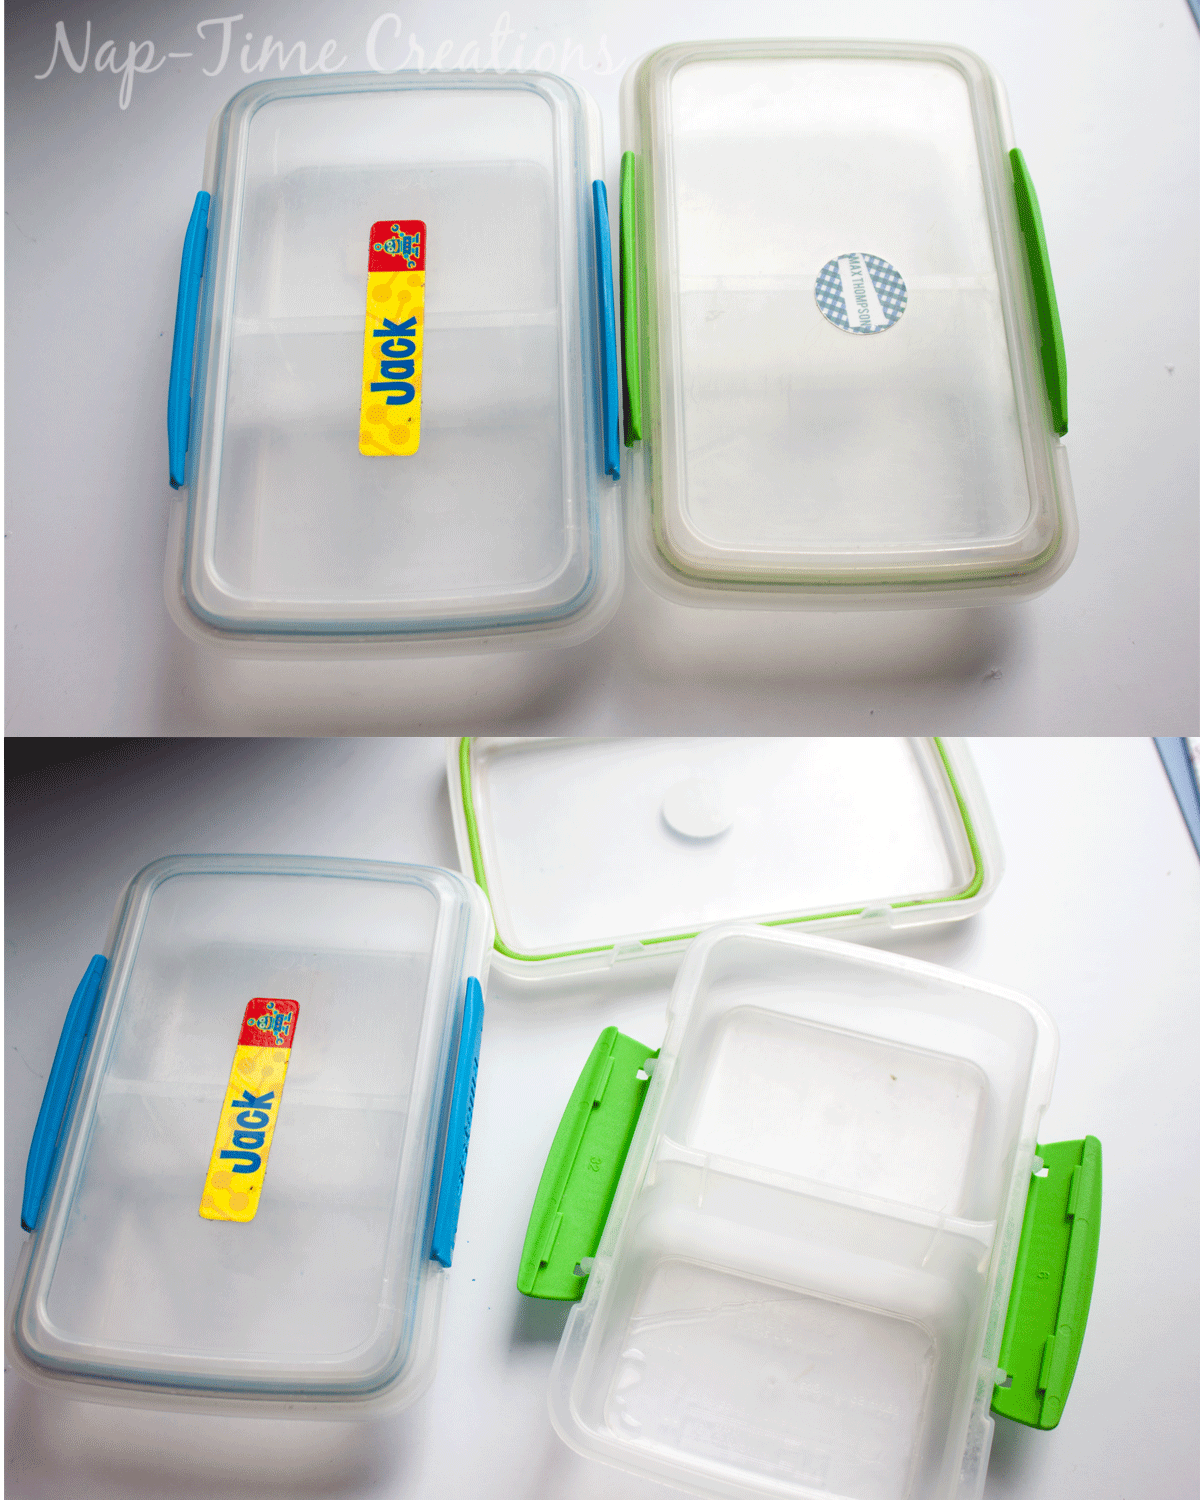 the-Best-School-Lunch-boxes-a-review-from-Nap-Time-Creations6